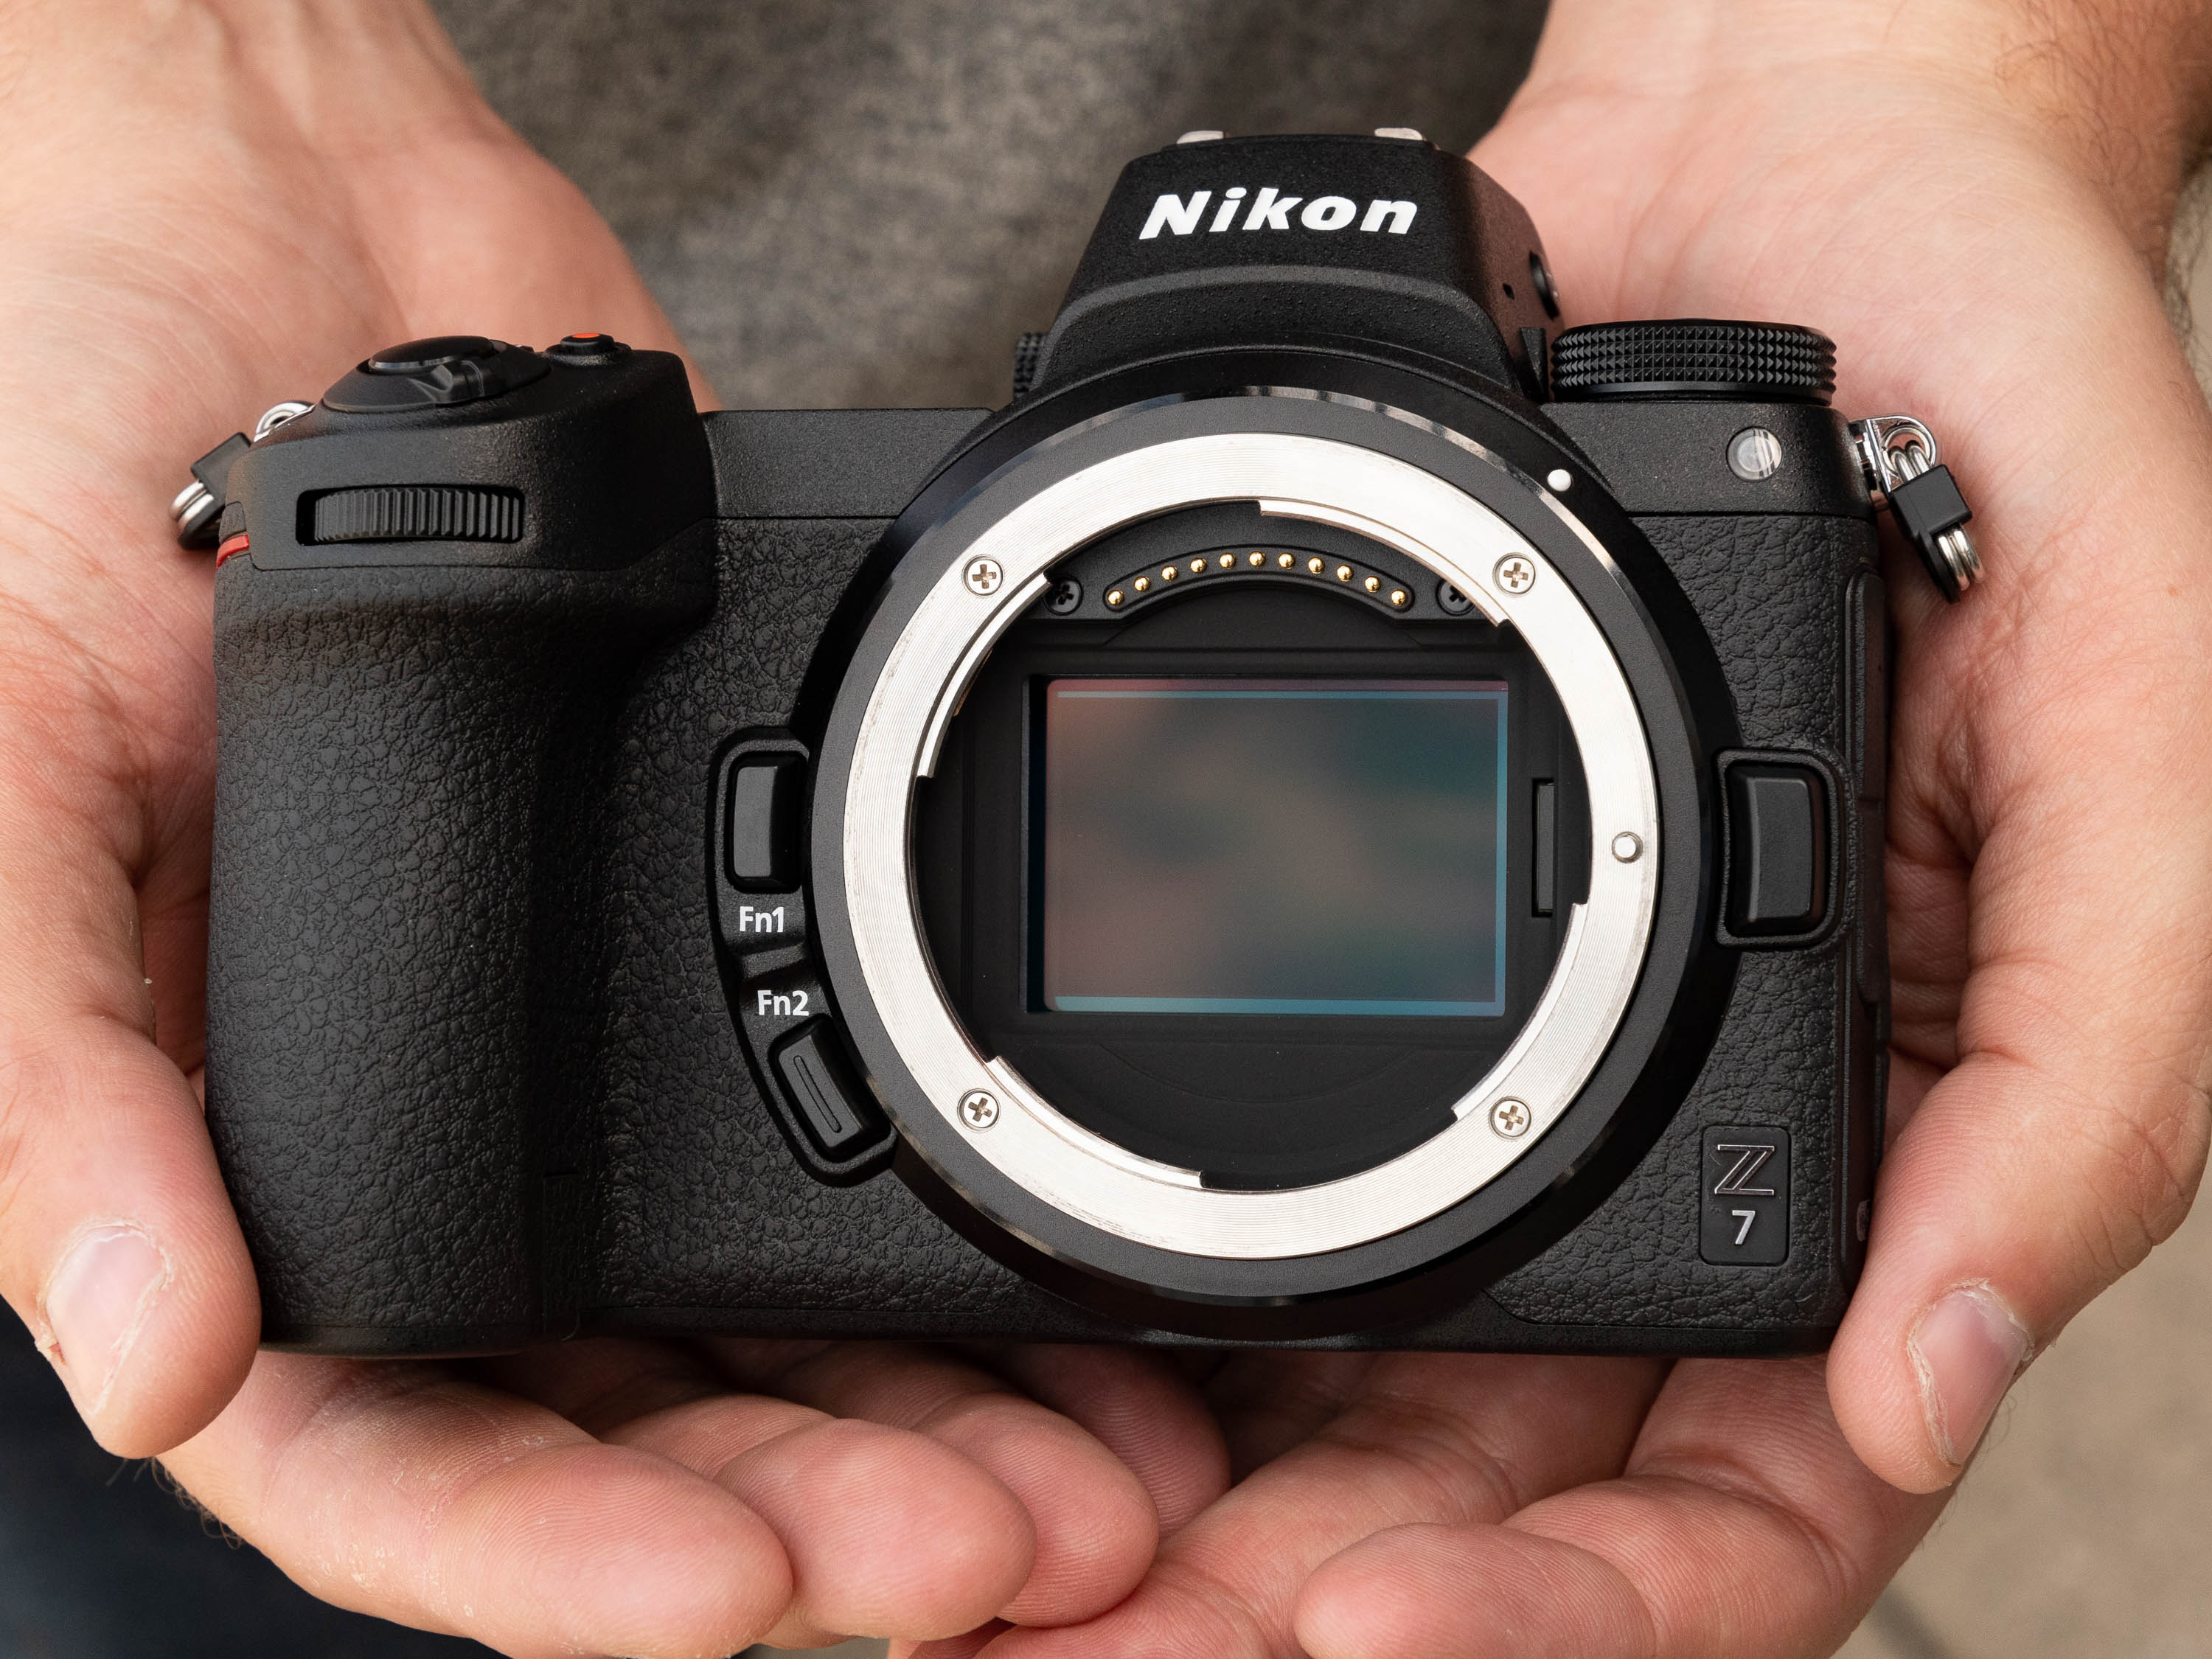 Nikon issues technical service advisory for VR issue in certain Z6